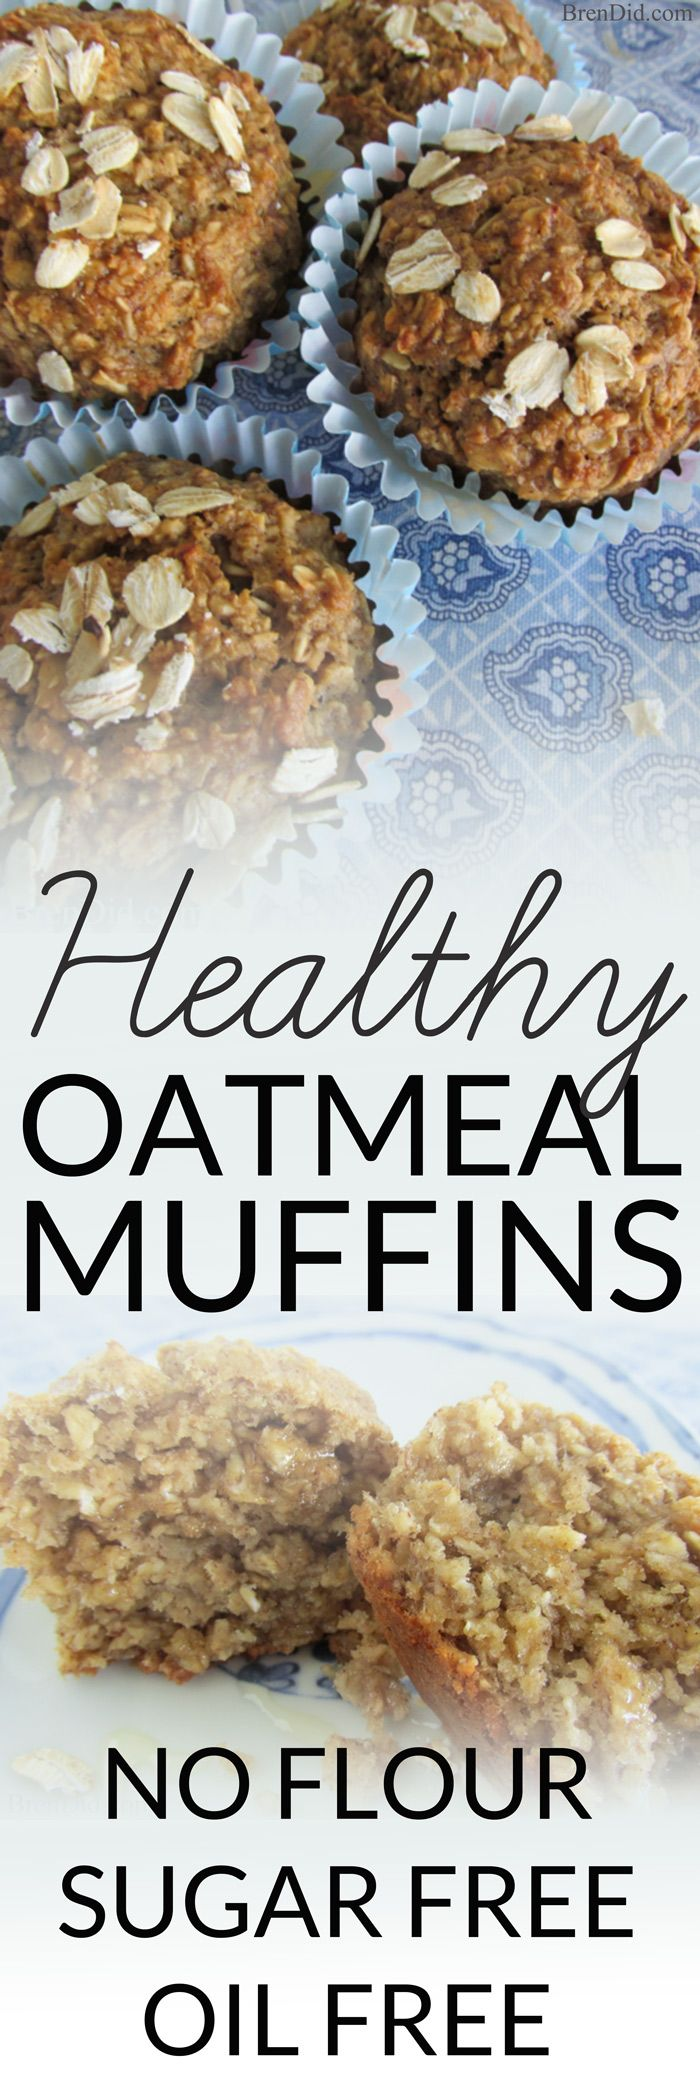 Healthy Oatmeal Muffins - Most muffins = junk food! These sound delicious plus no refined sugar, no oil and no flour. Must try! gluten free